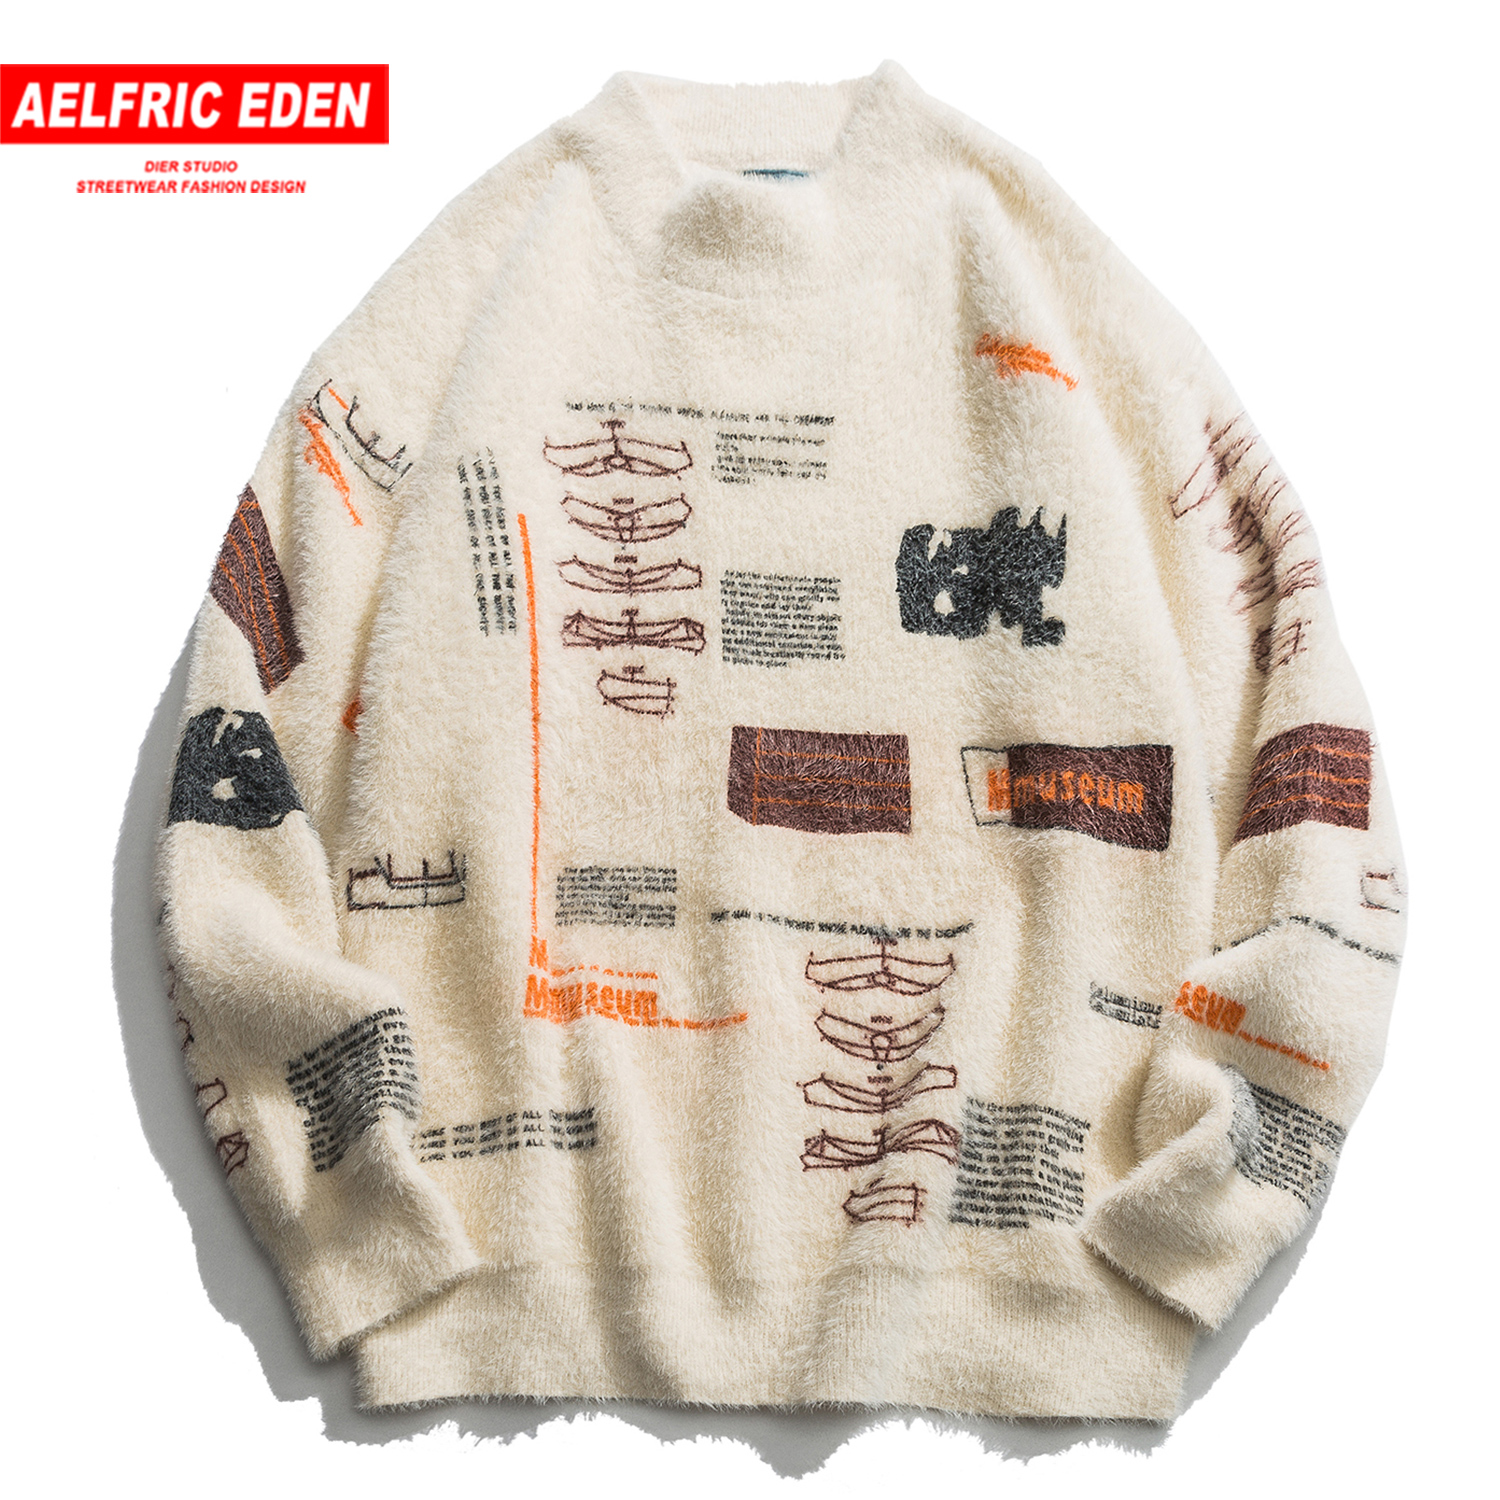 Aelfric Eden Graffiti Knitwear Sweater Men Casual Harajuku Hip Hop Knitted Pullovers Male Tops Long Sleeve Outwear Streetwear